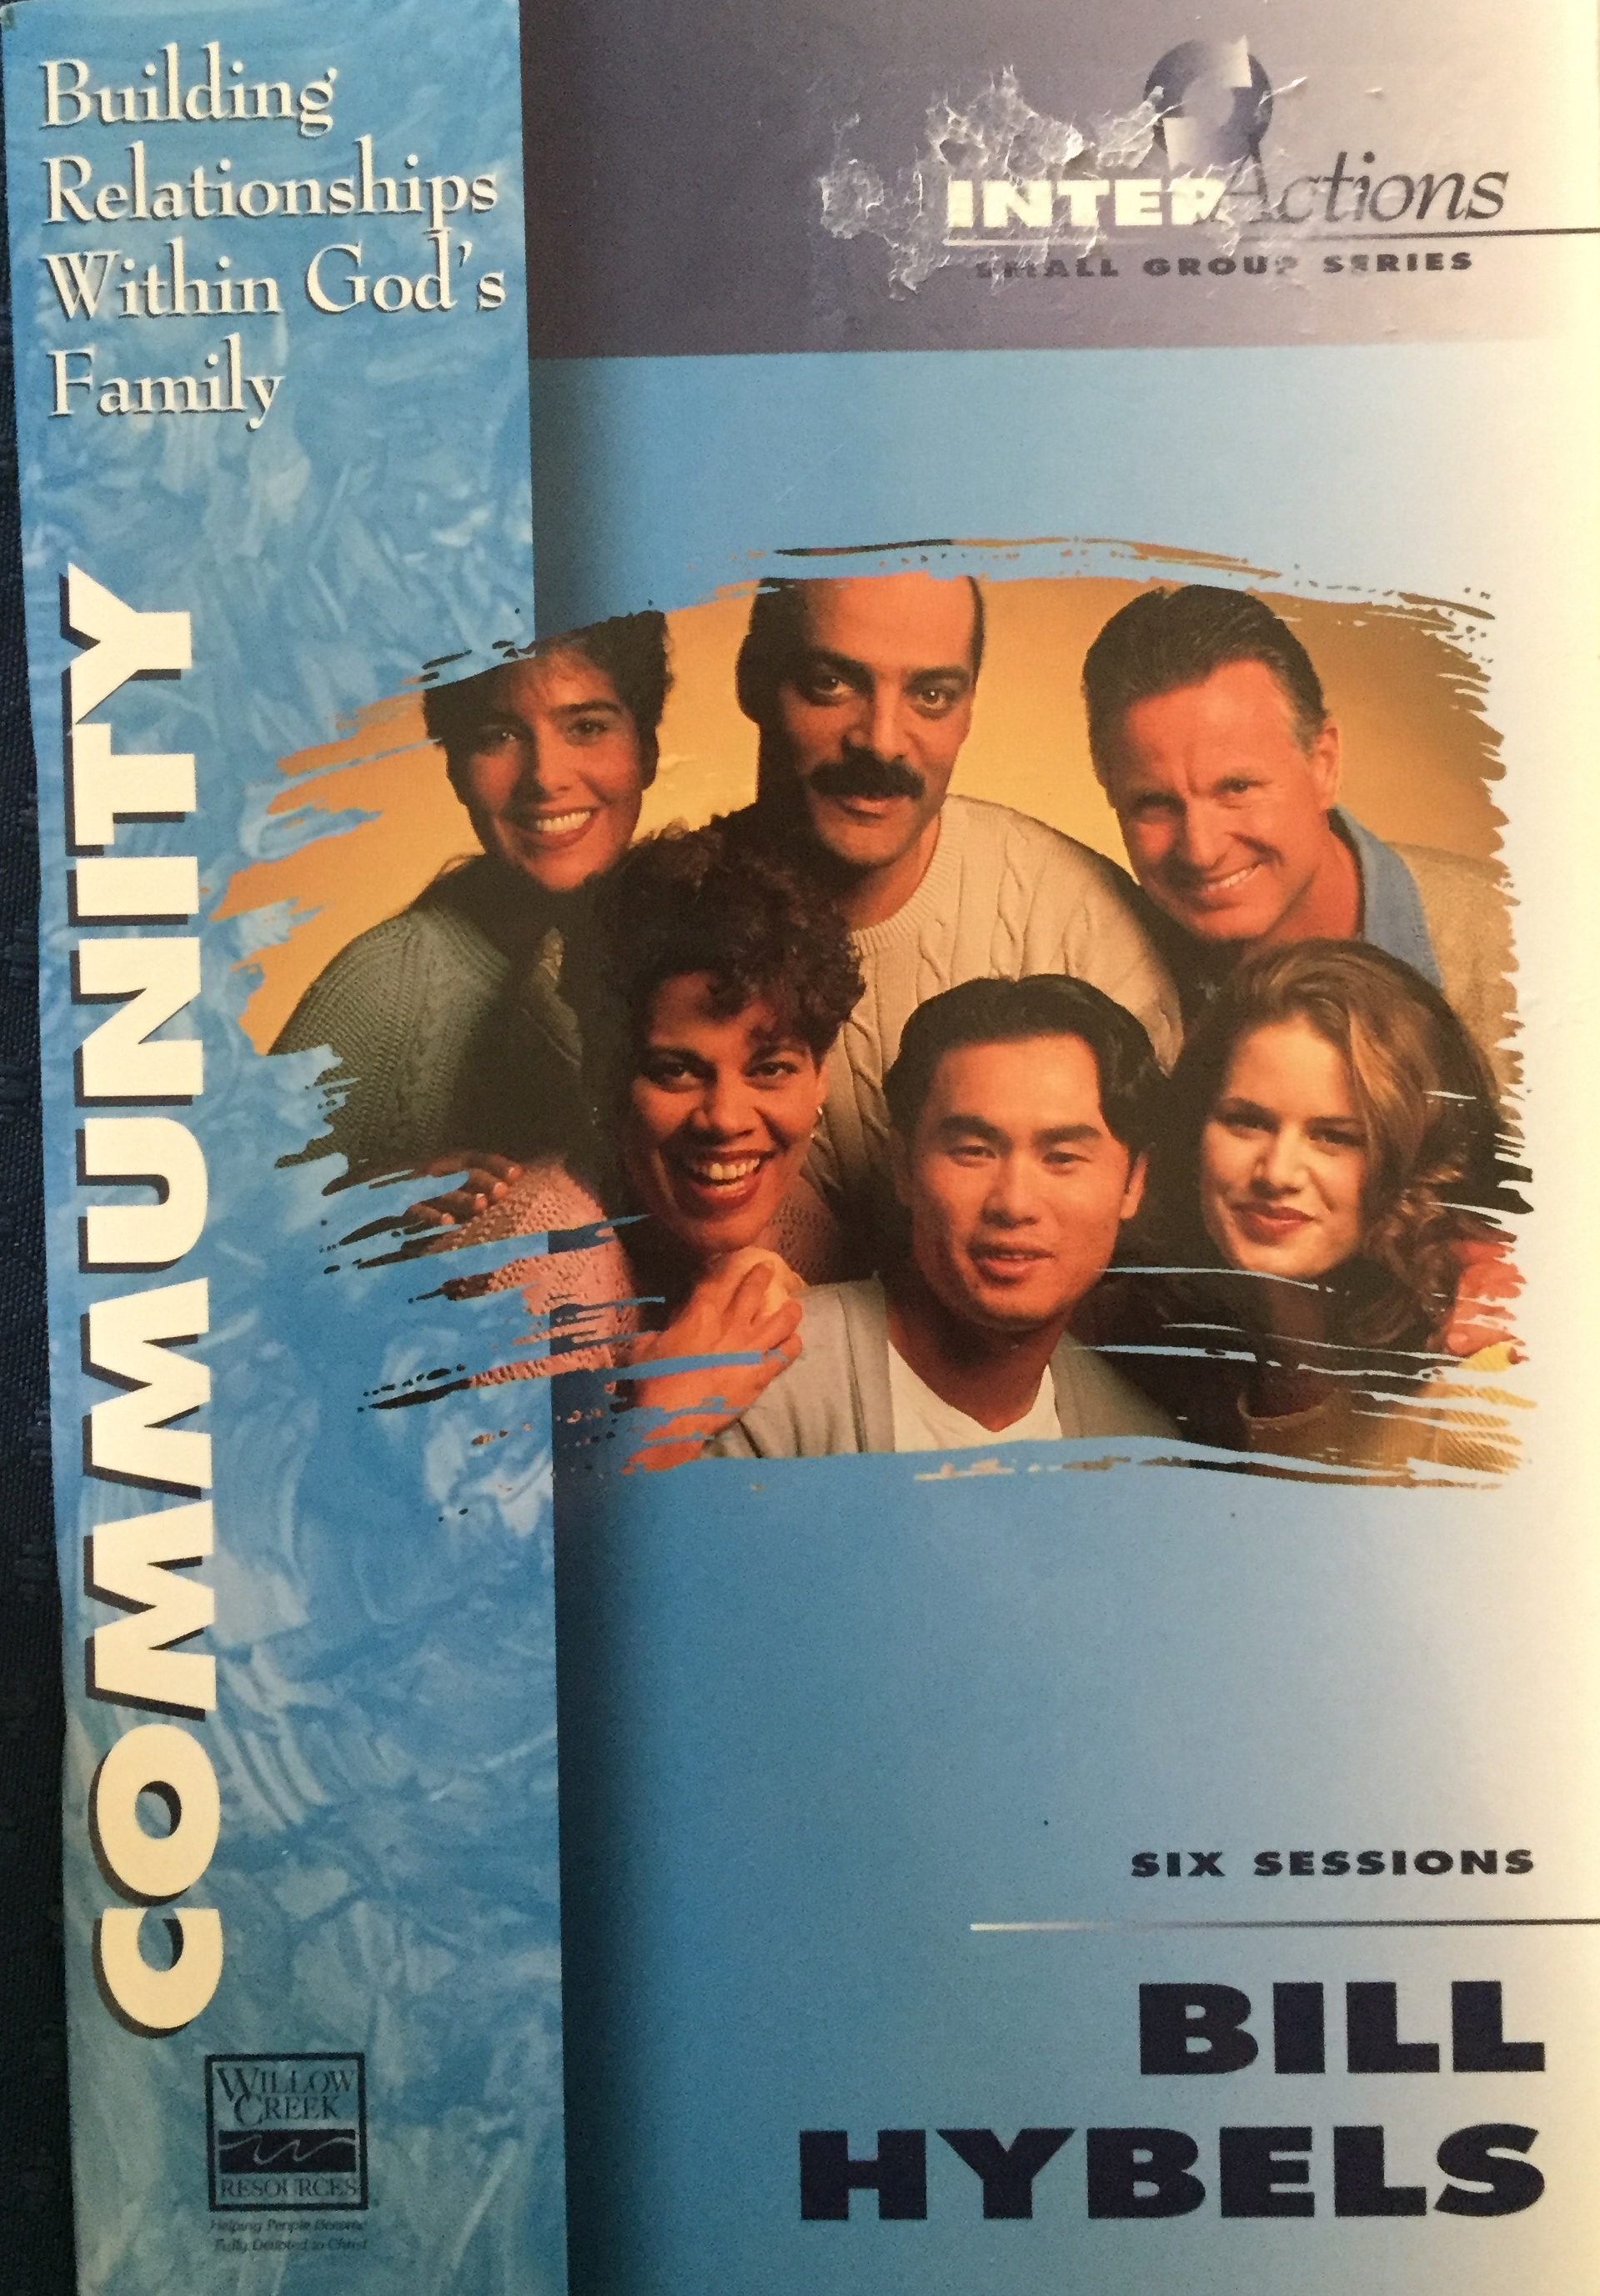 Community - building relationships within God's family